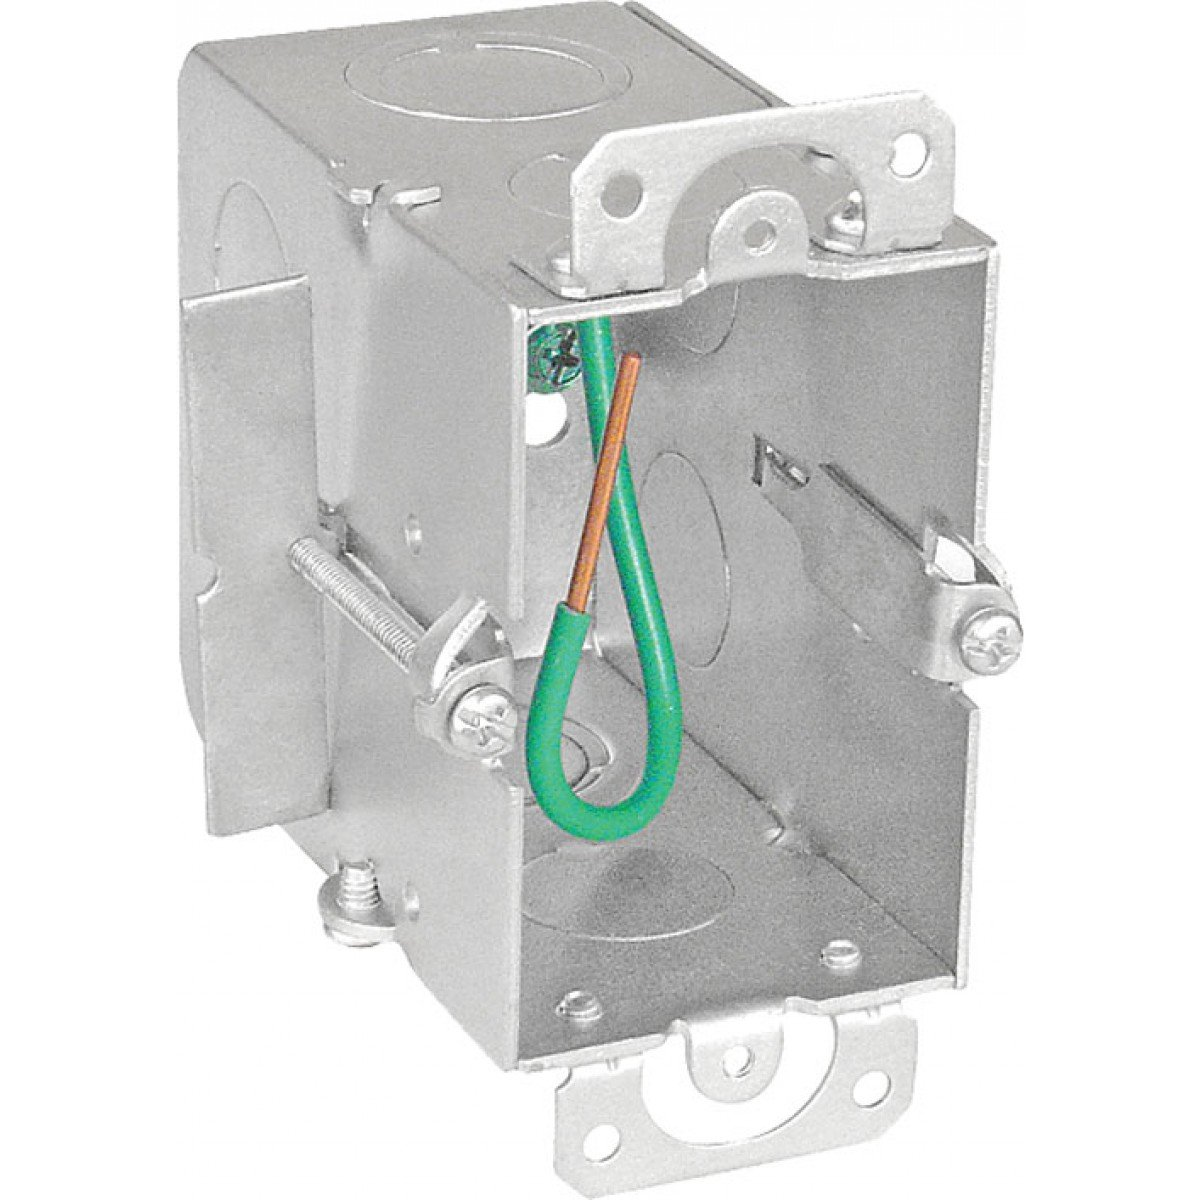 2 Pcs, 3-1/2 In. Deep, Switch Box w/Old-Work Clips & (6) 1/2 In. Side Knockouts; (2) 1/2 In. Bottom Knockouts, Zinc Plated Steel